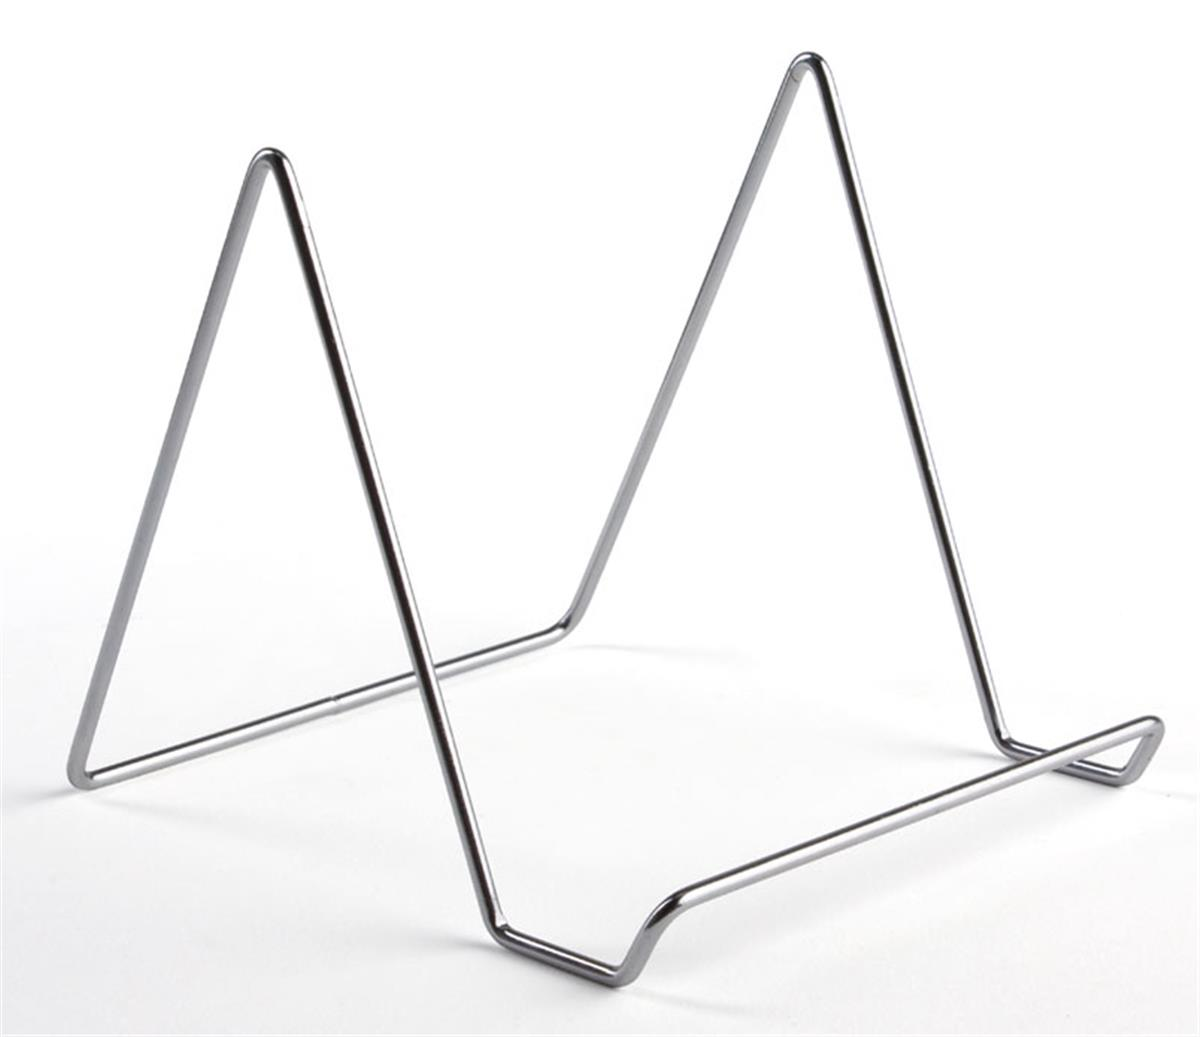 These Table Easels Are Eye Catching Displays That